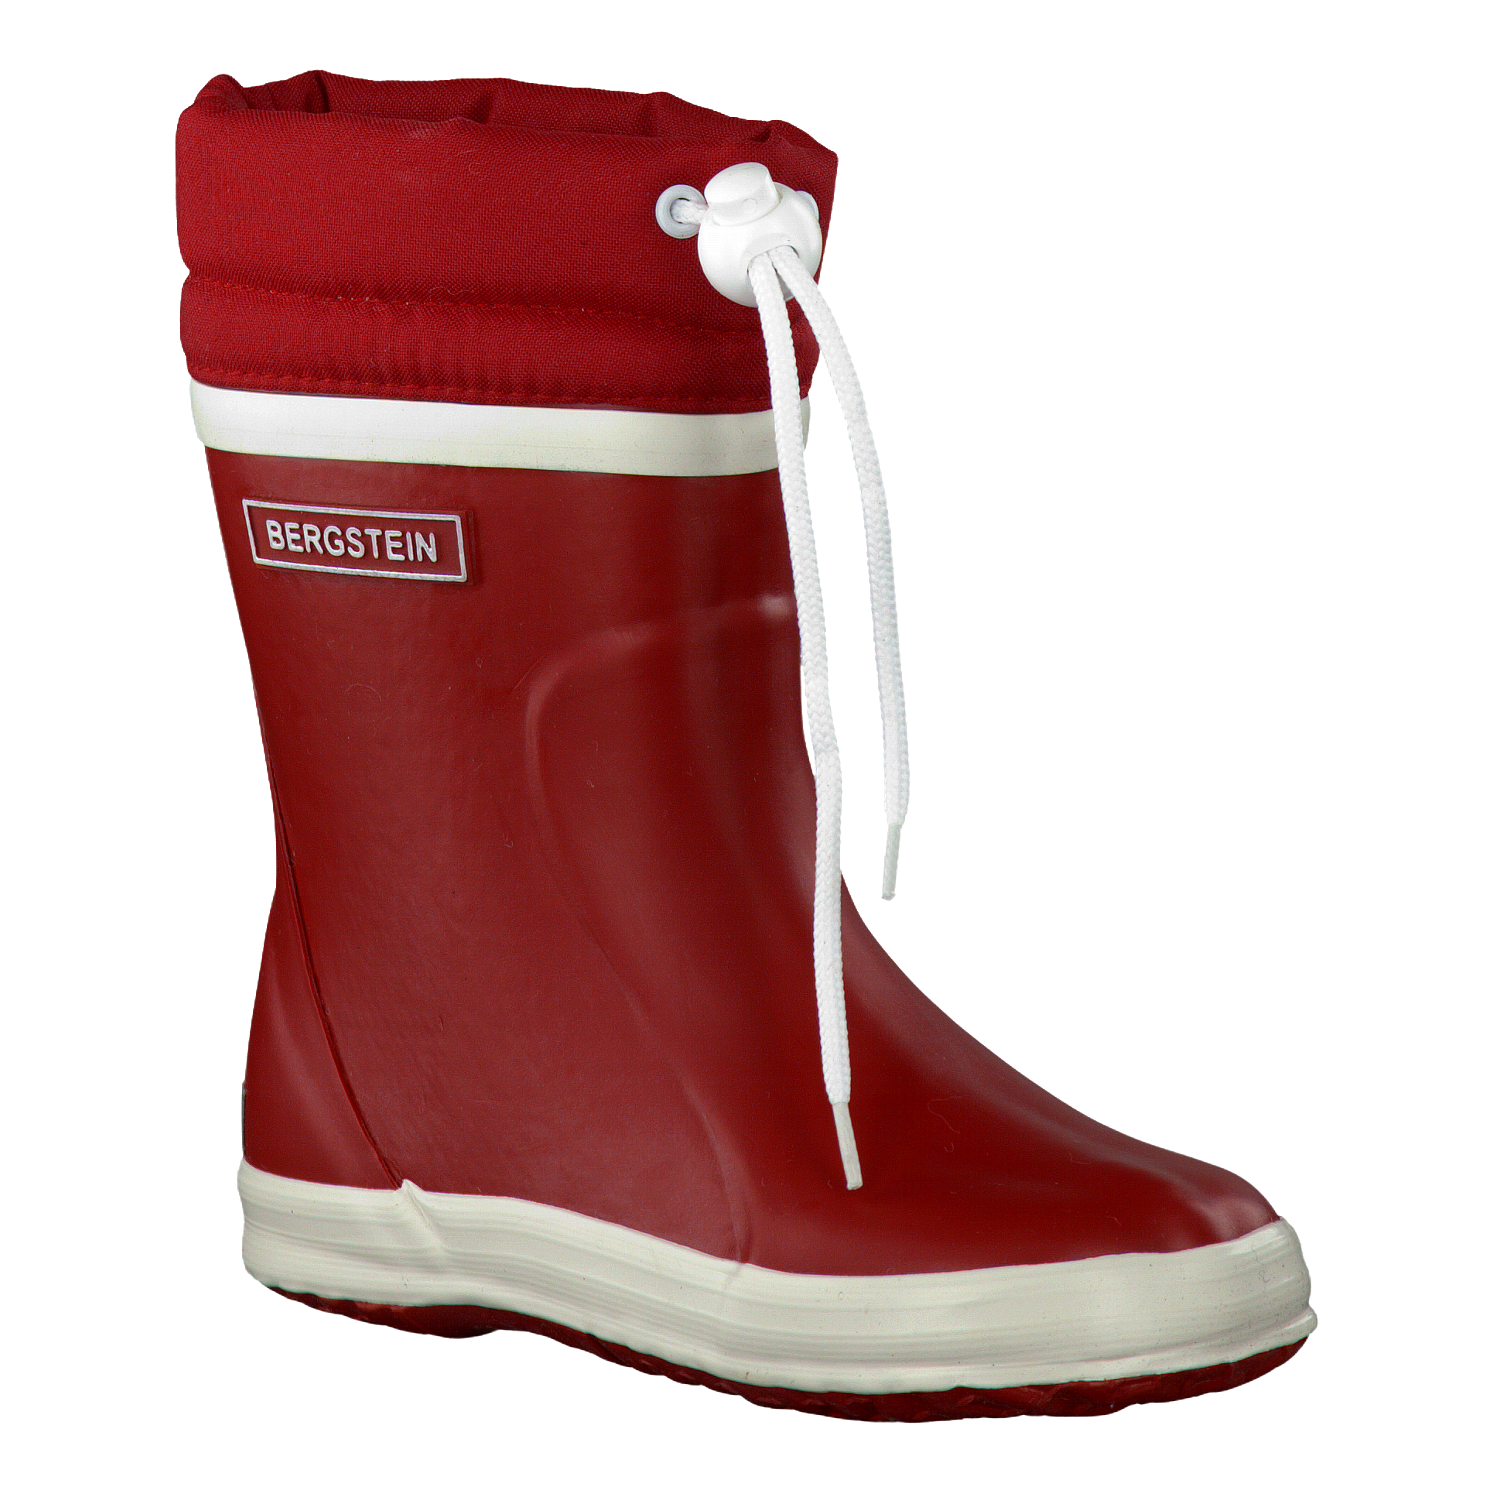 Bergstein Botte D'hiver - Rouge - Taille 34 1ayDY4